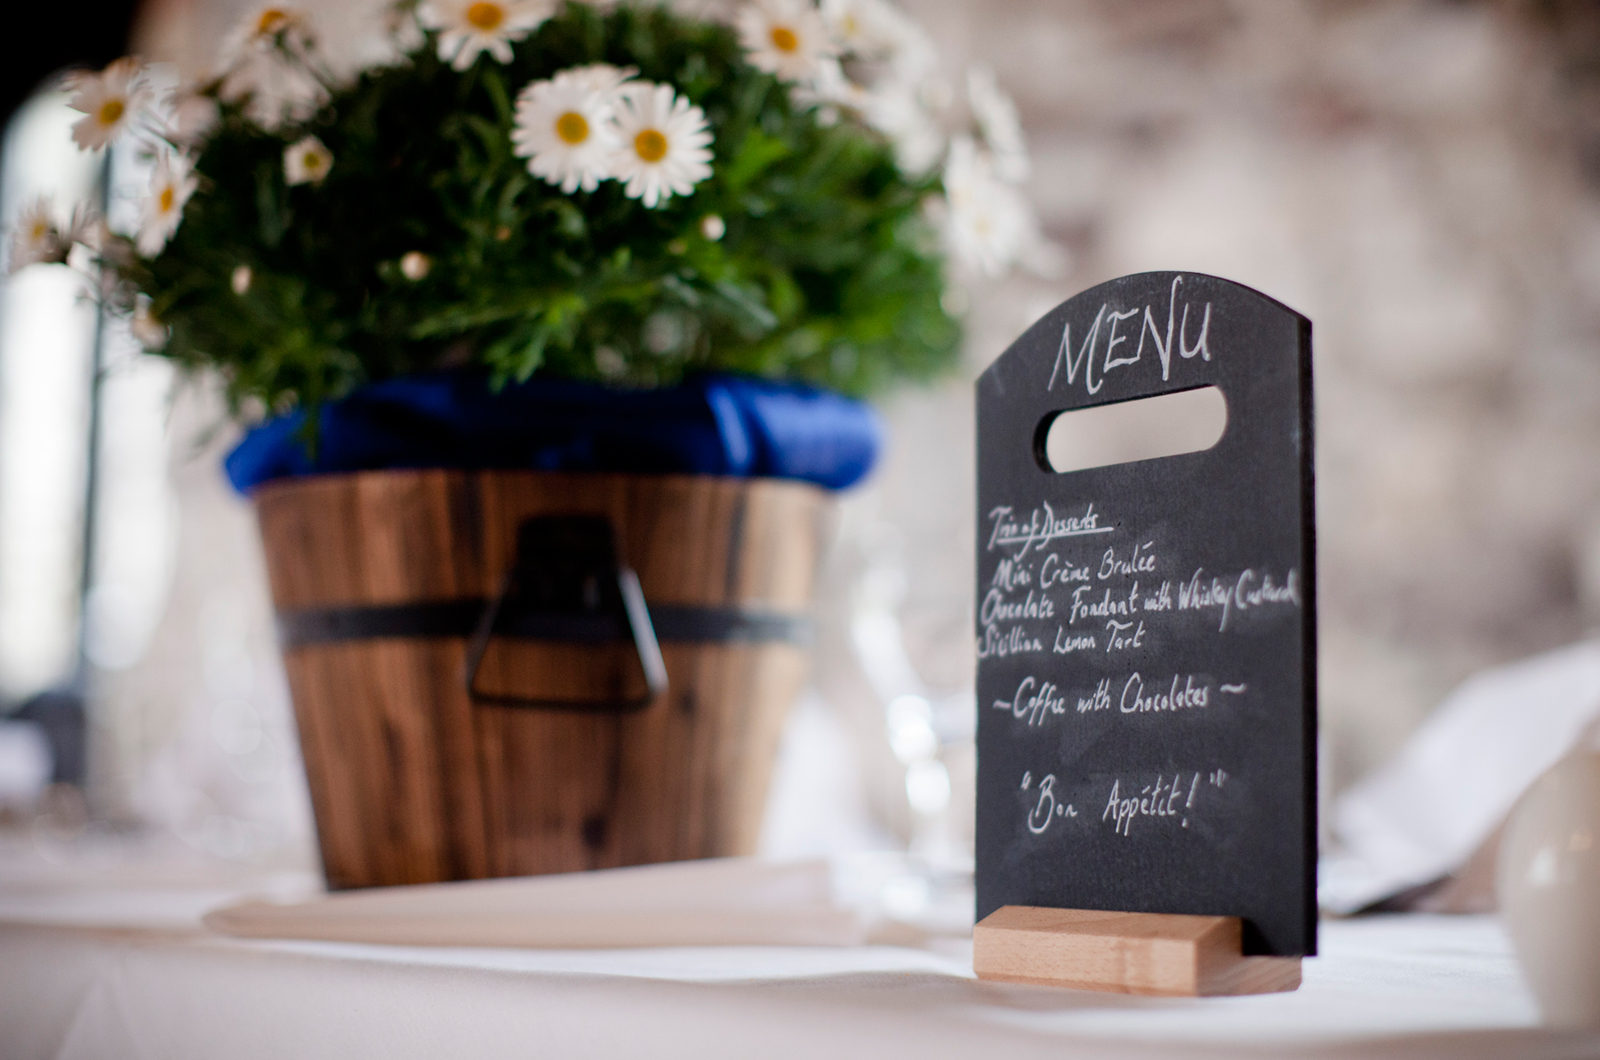 Bespoke wedding menus